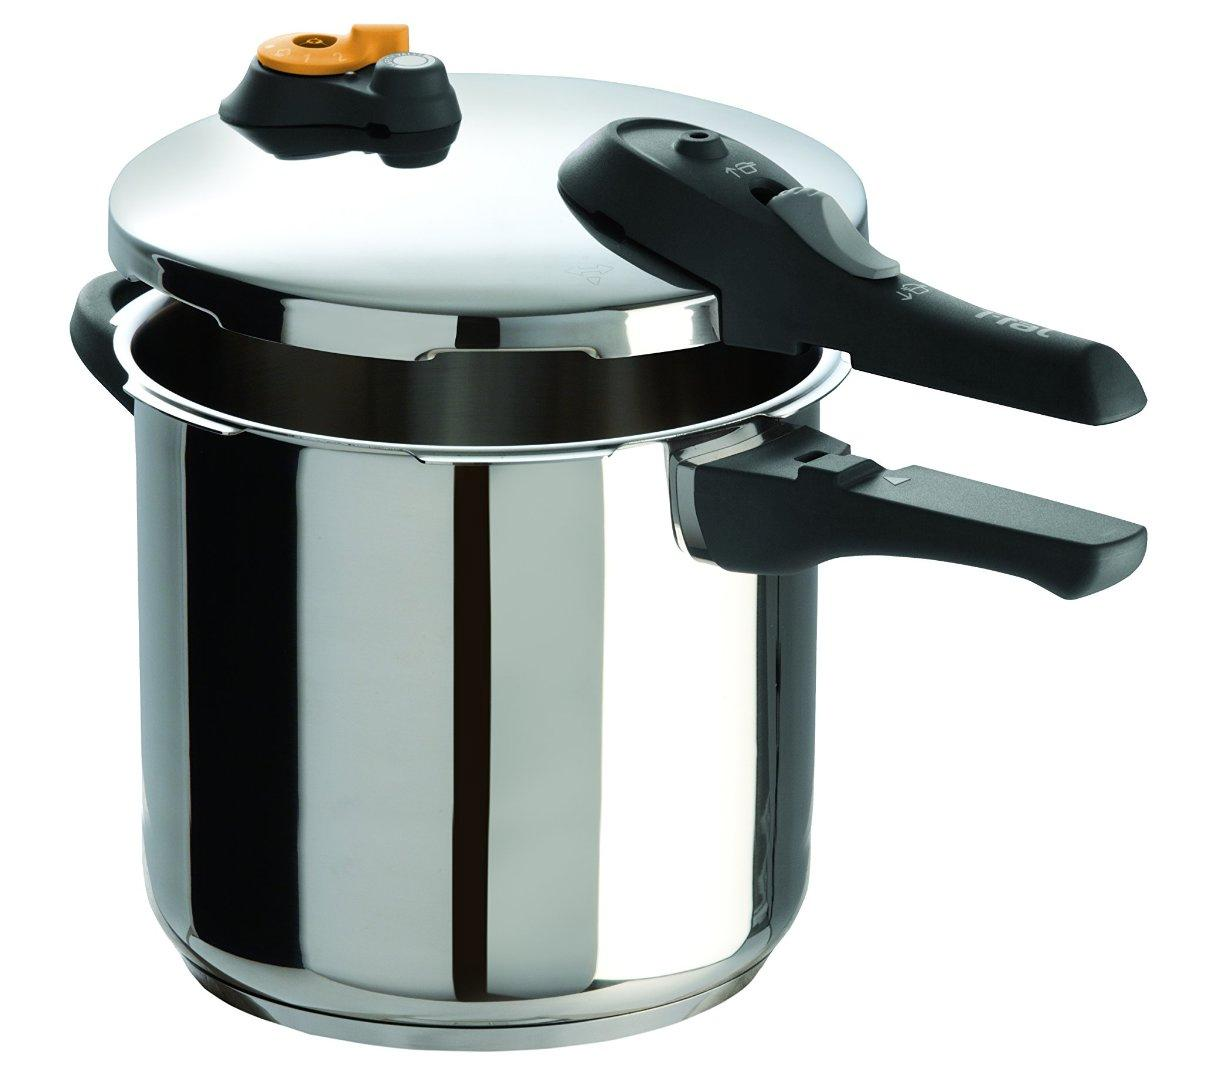 New t fal p2514437 pressure cooker 8 5 quart oven safe stainless steel easyclean - Cookers and ovens cleaning tips ...